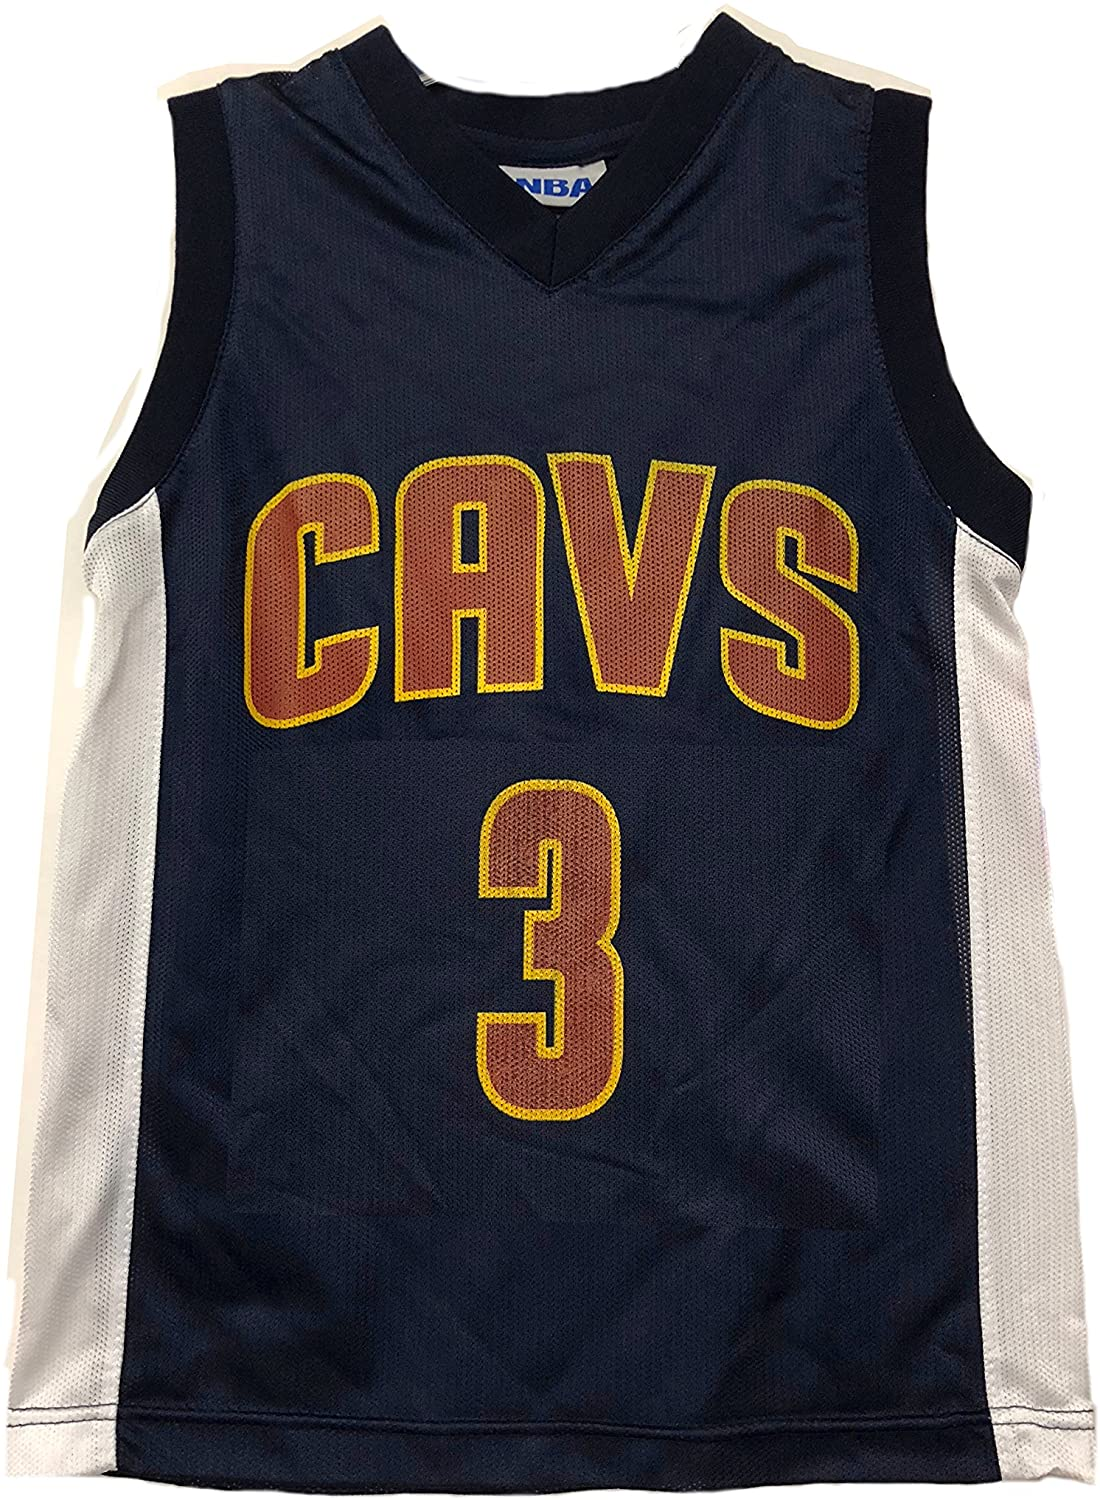 Outerstuff NBA Boys Youth 8-20 Player Name & Number Mesh Player Jersey (Youth Small 8, Cleveland Cavaliers Isaiah Thomas Navy)